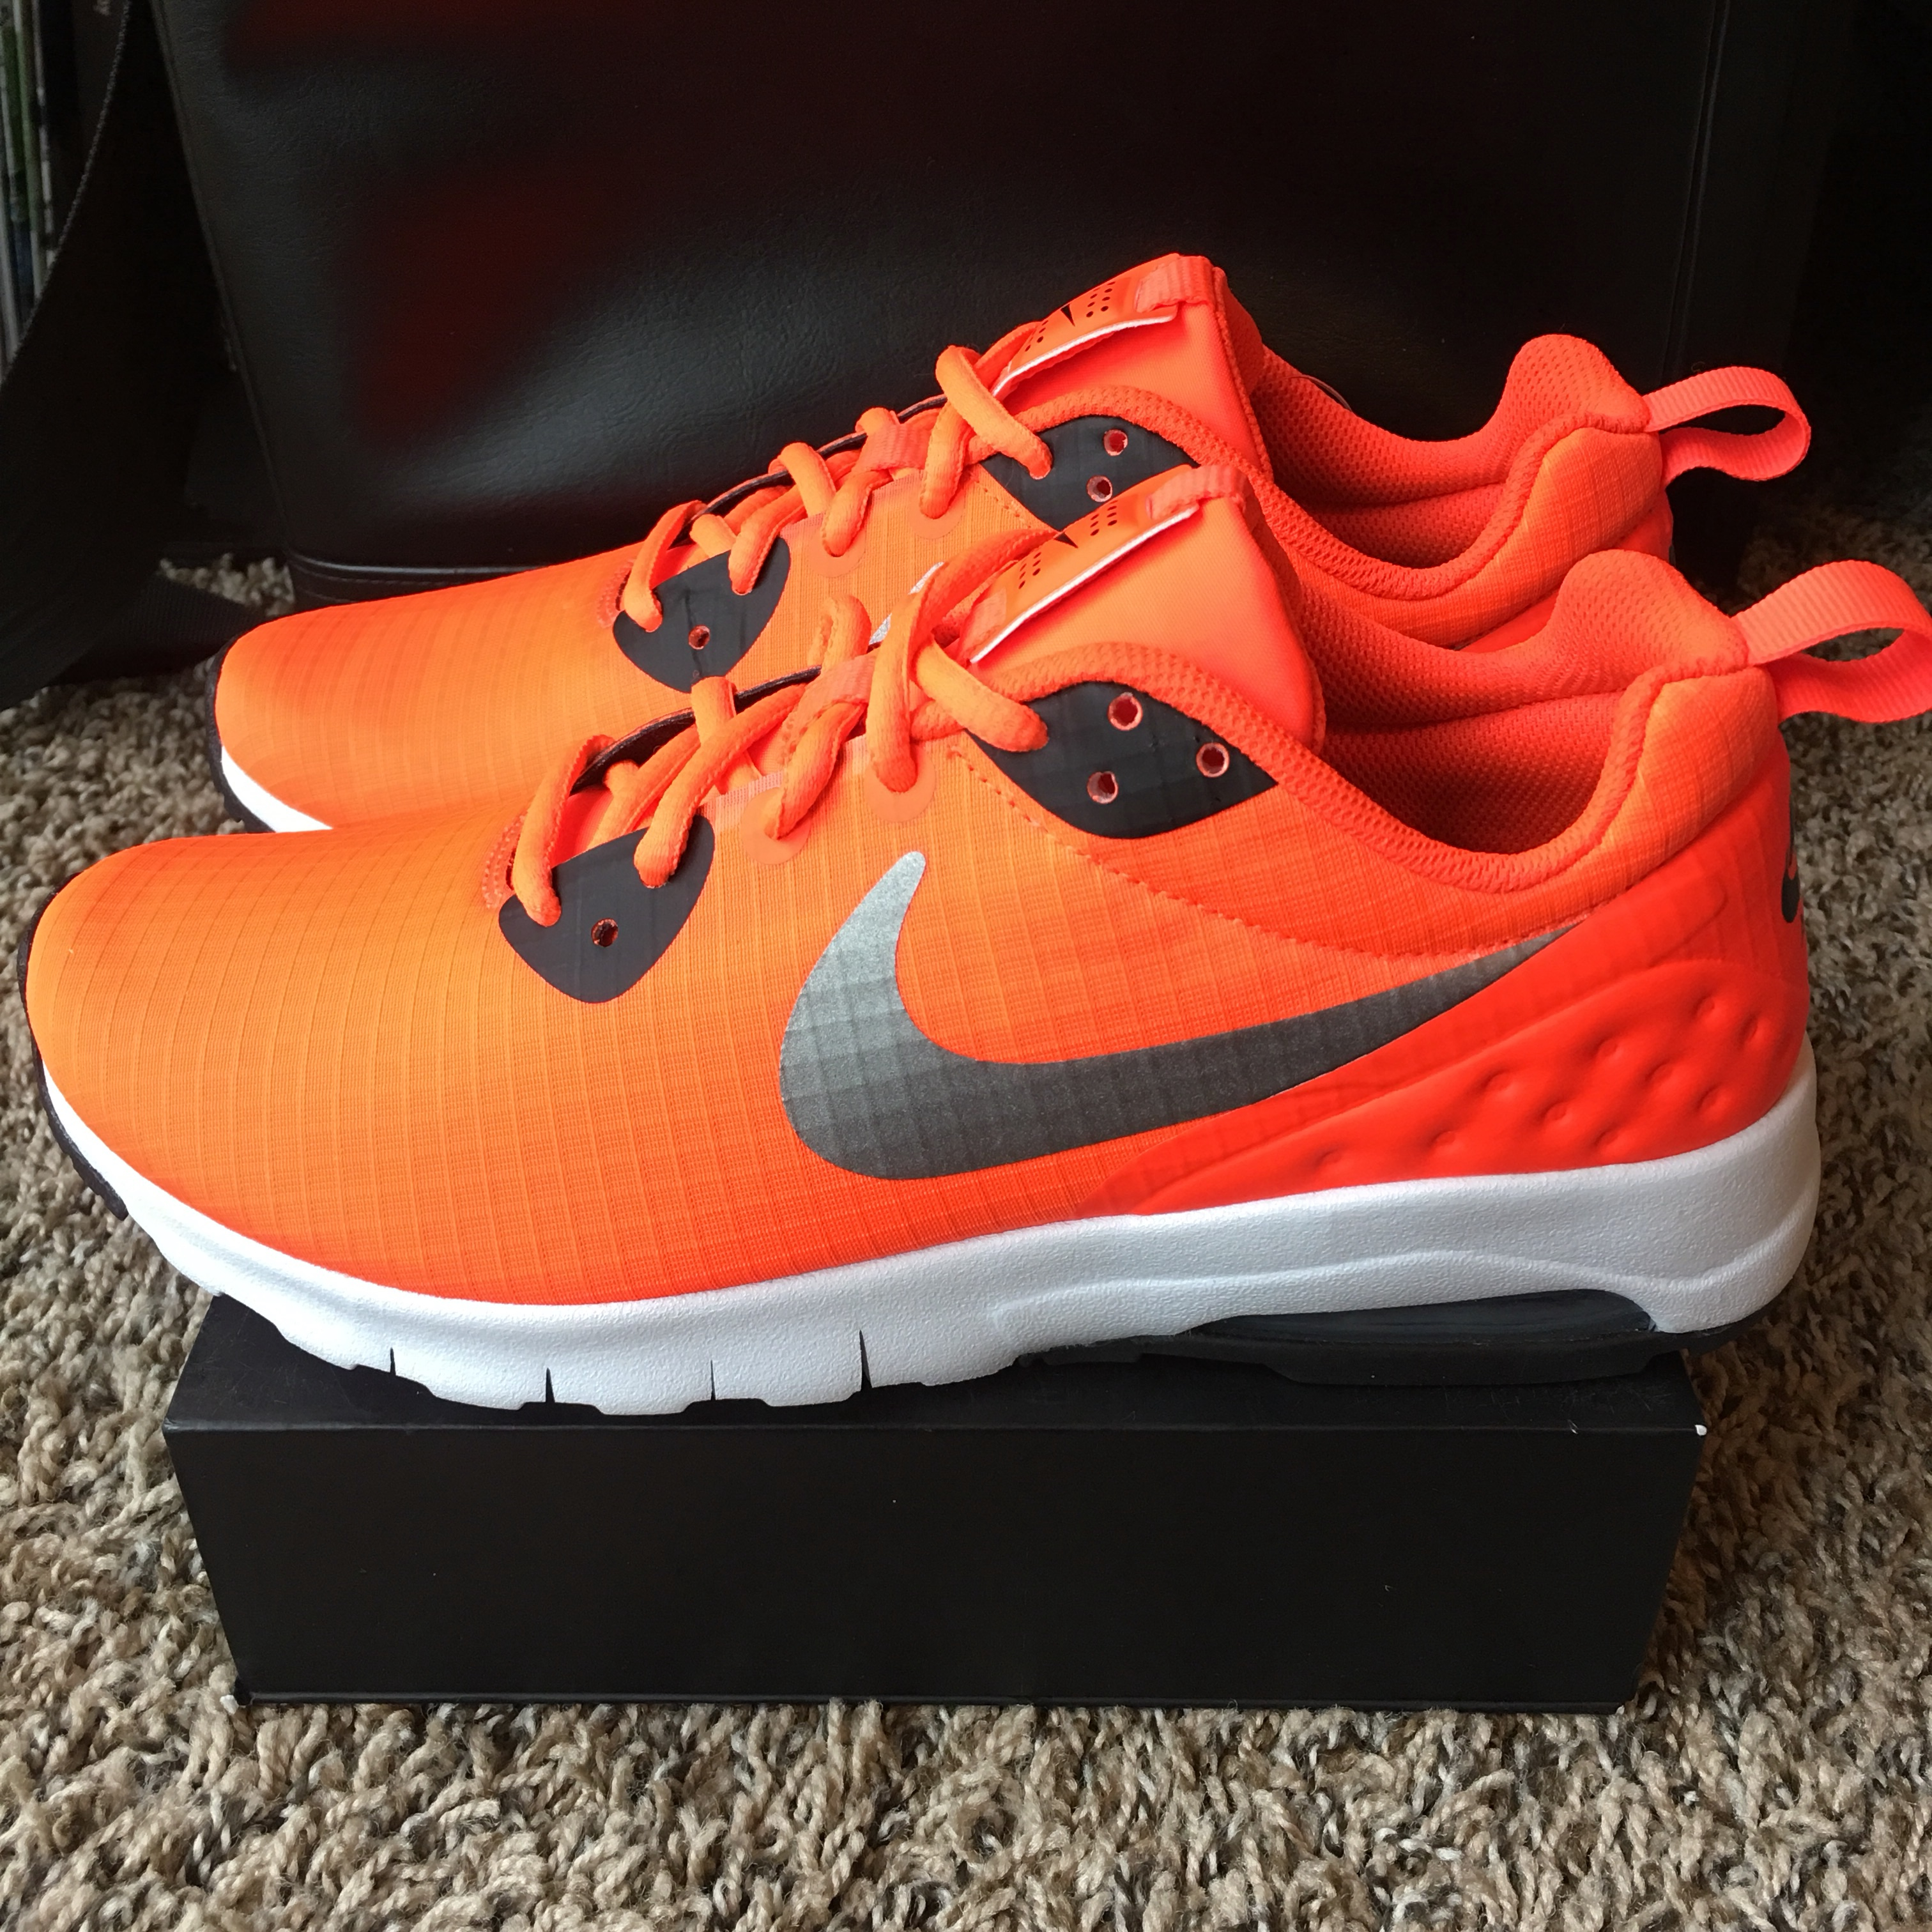 NEW NIKE Air Max Motion LW SE Women's Training Shoes